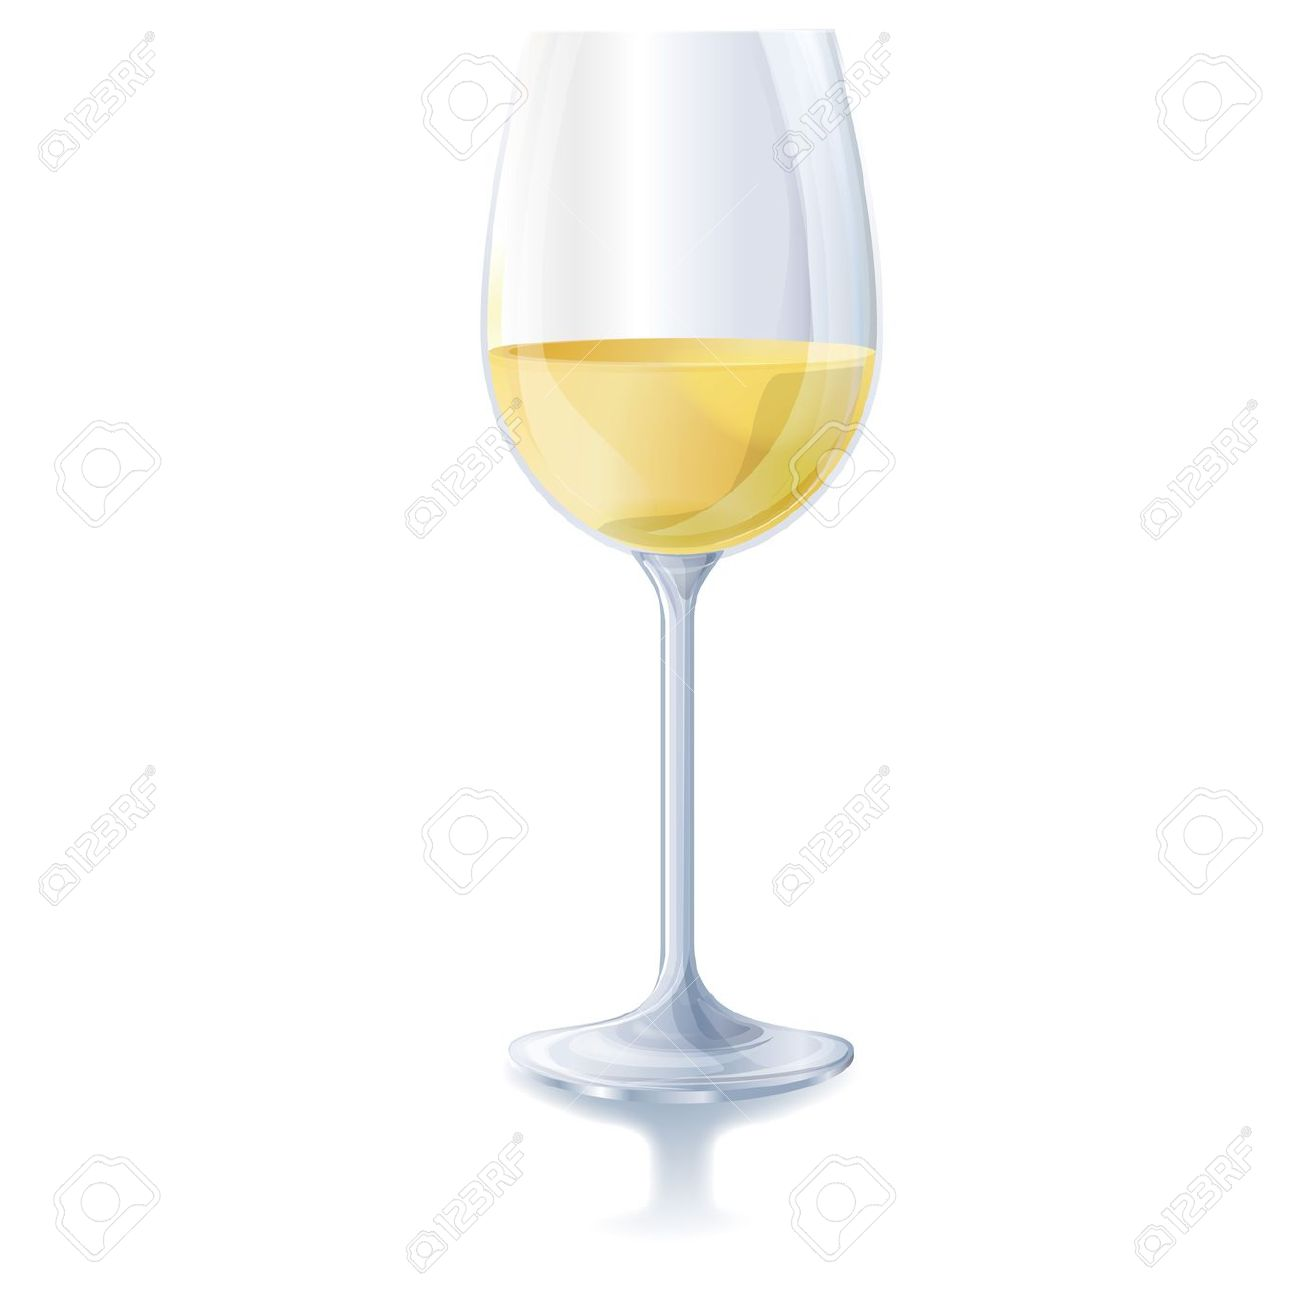 hight resolution of white wine glass clip art